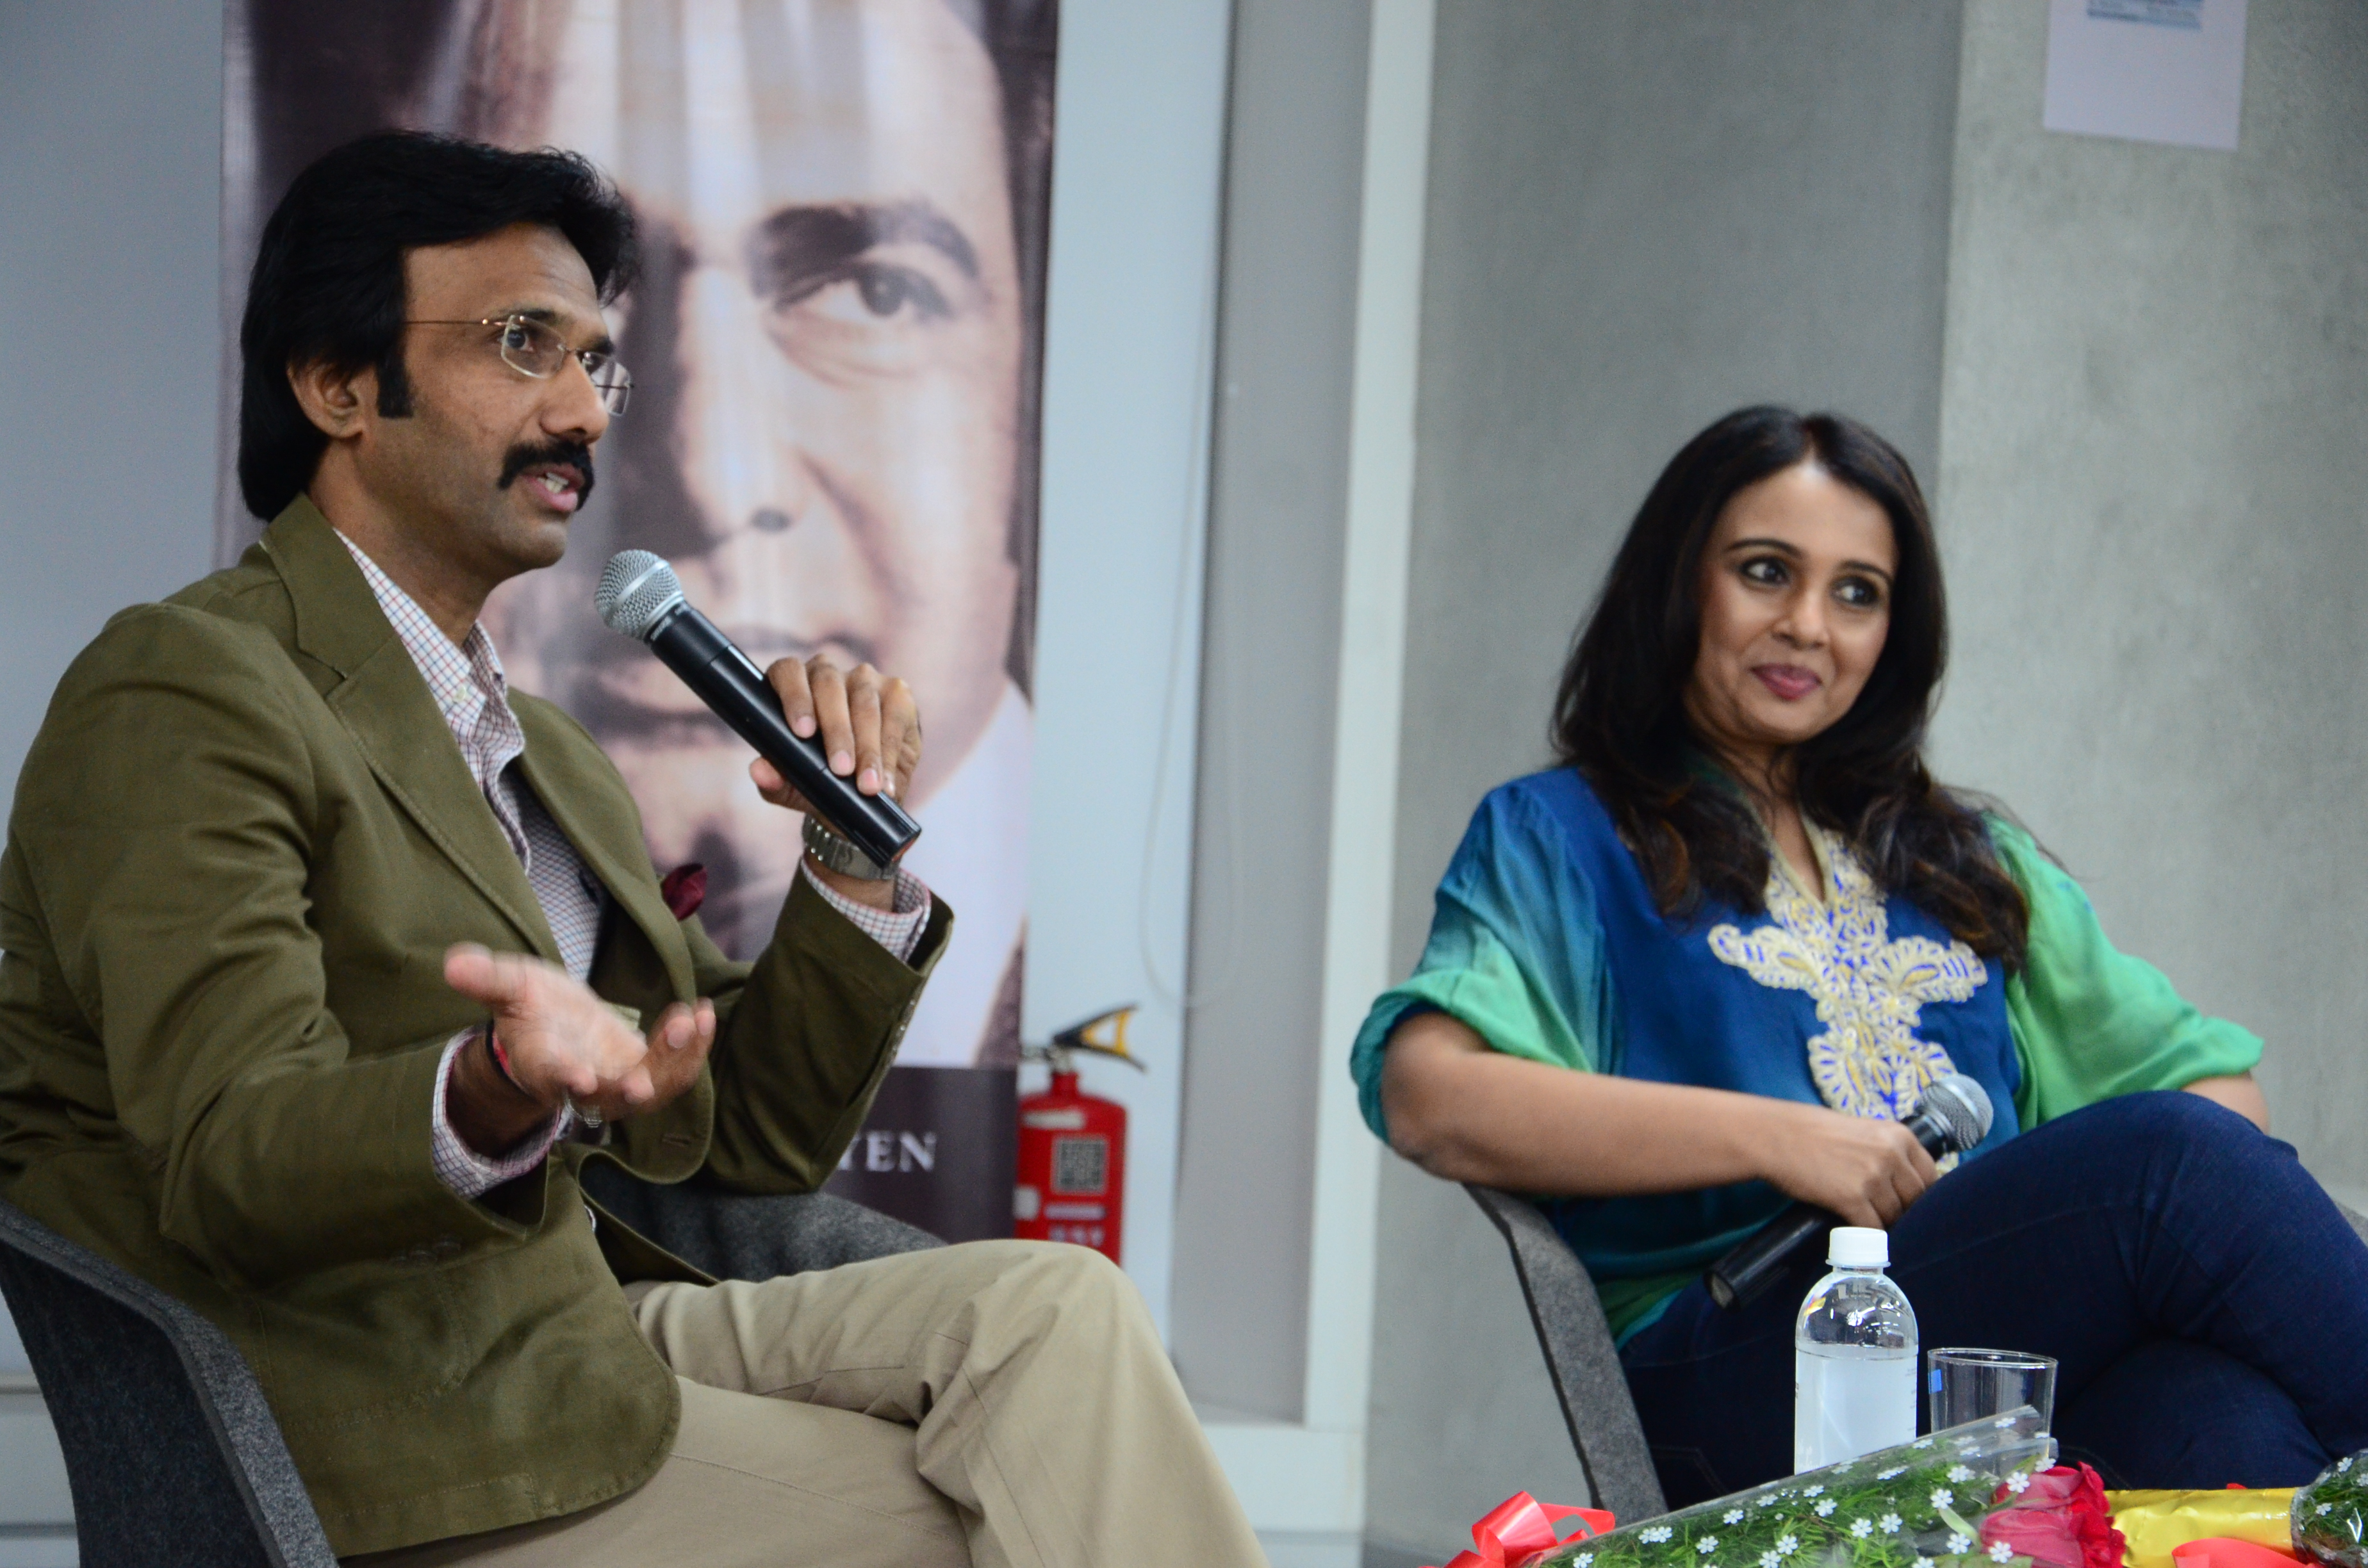 Mohammad Ali Baig and Suchitra Krishnamoorthi in an interactive session at the British Council